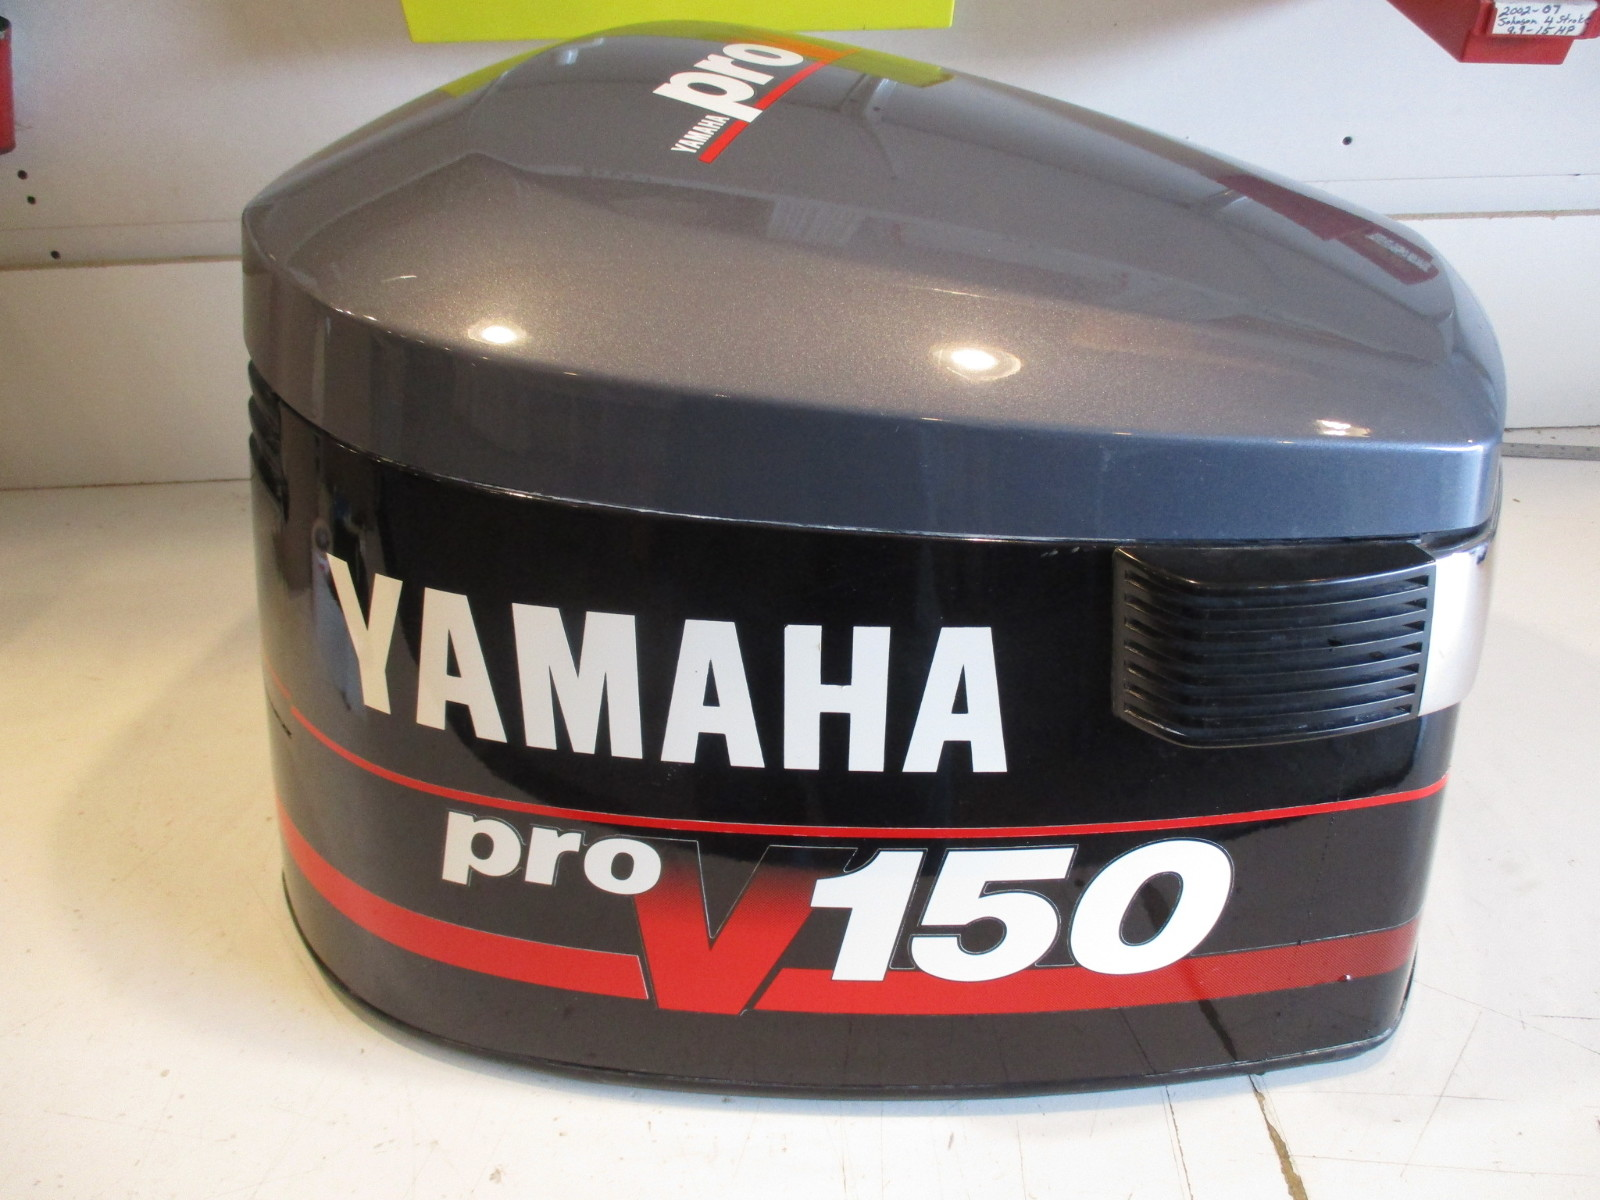 Yamaha outboard prov 150 top engine motor cover cowl 2 for Yamaha 150 2 stroke fuel consumption